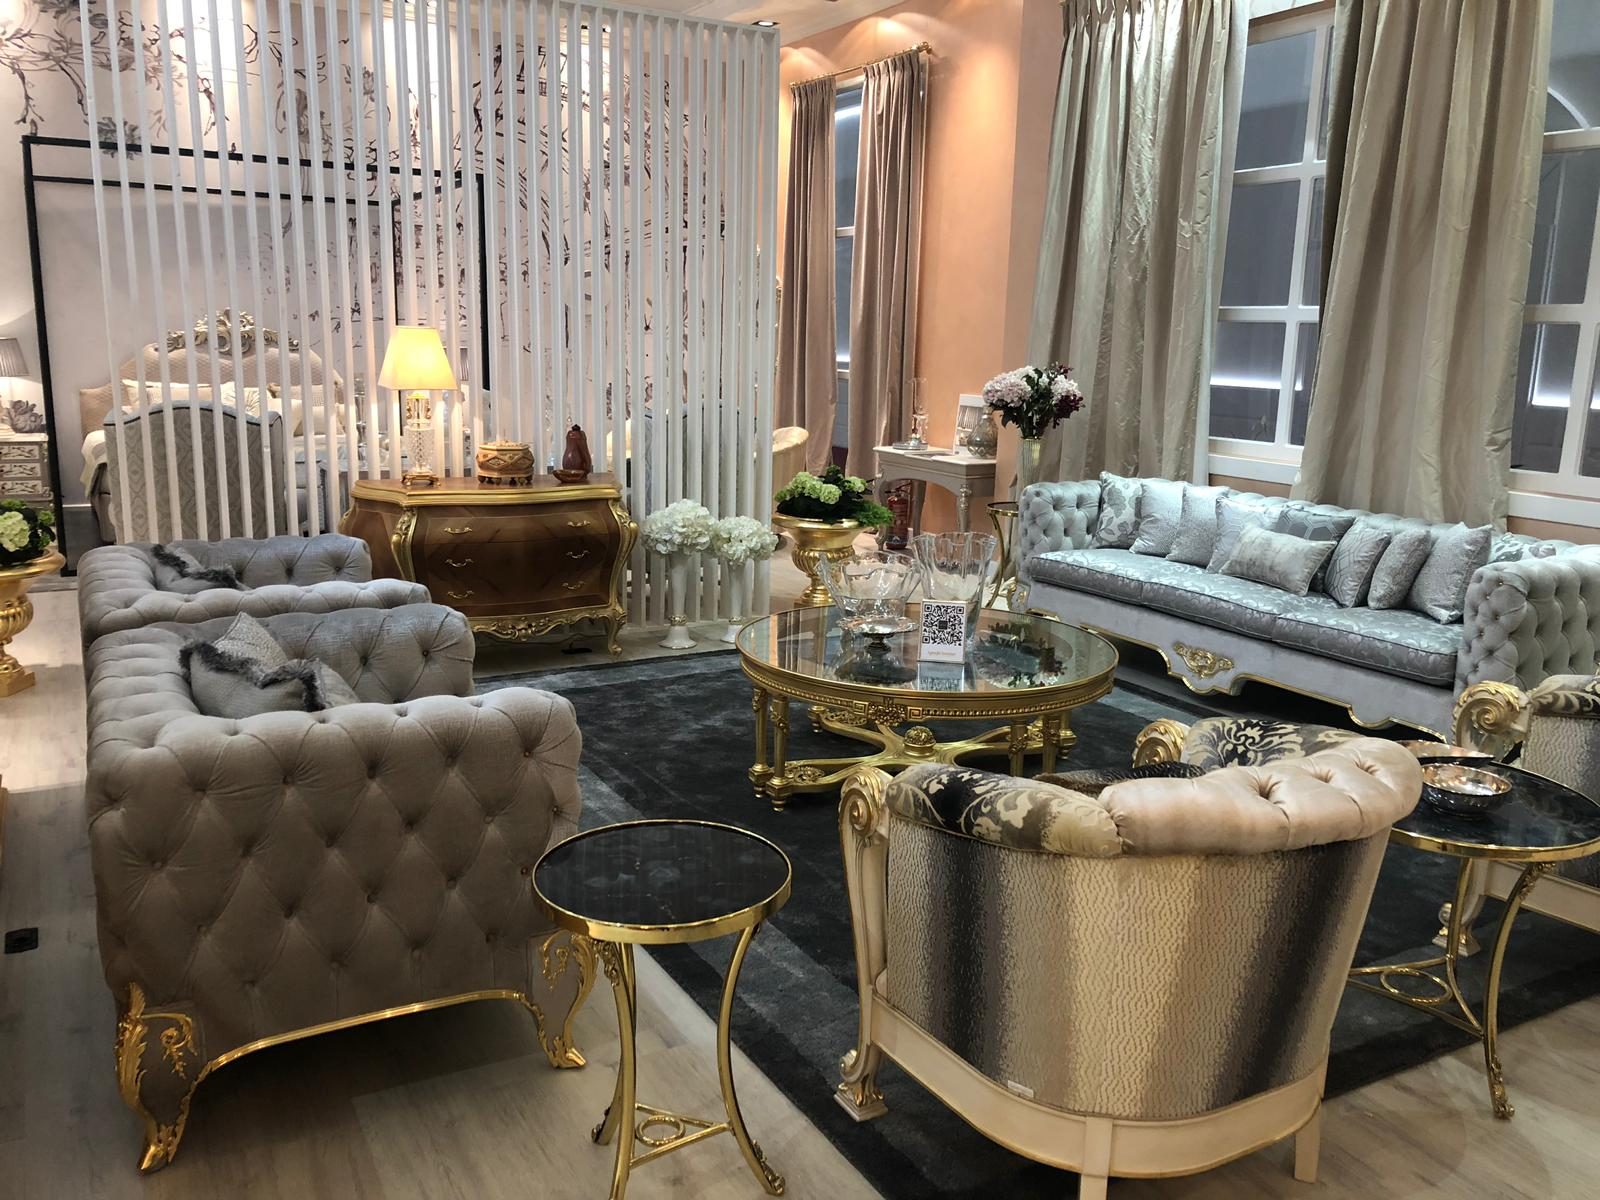 Asnaghi Interiors - Salone del Mobile 2019